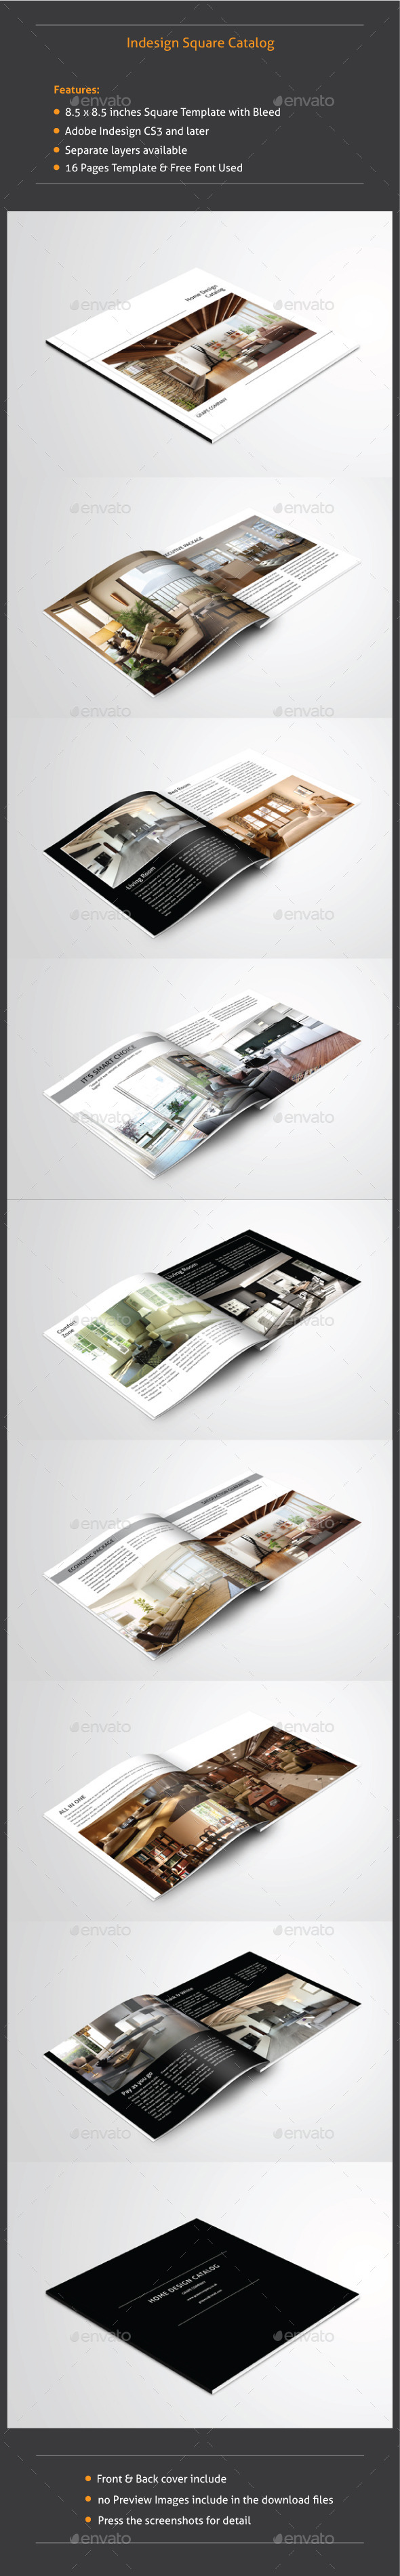 Indesign Square Catalog